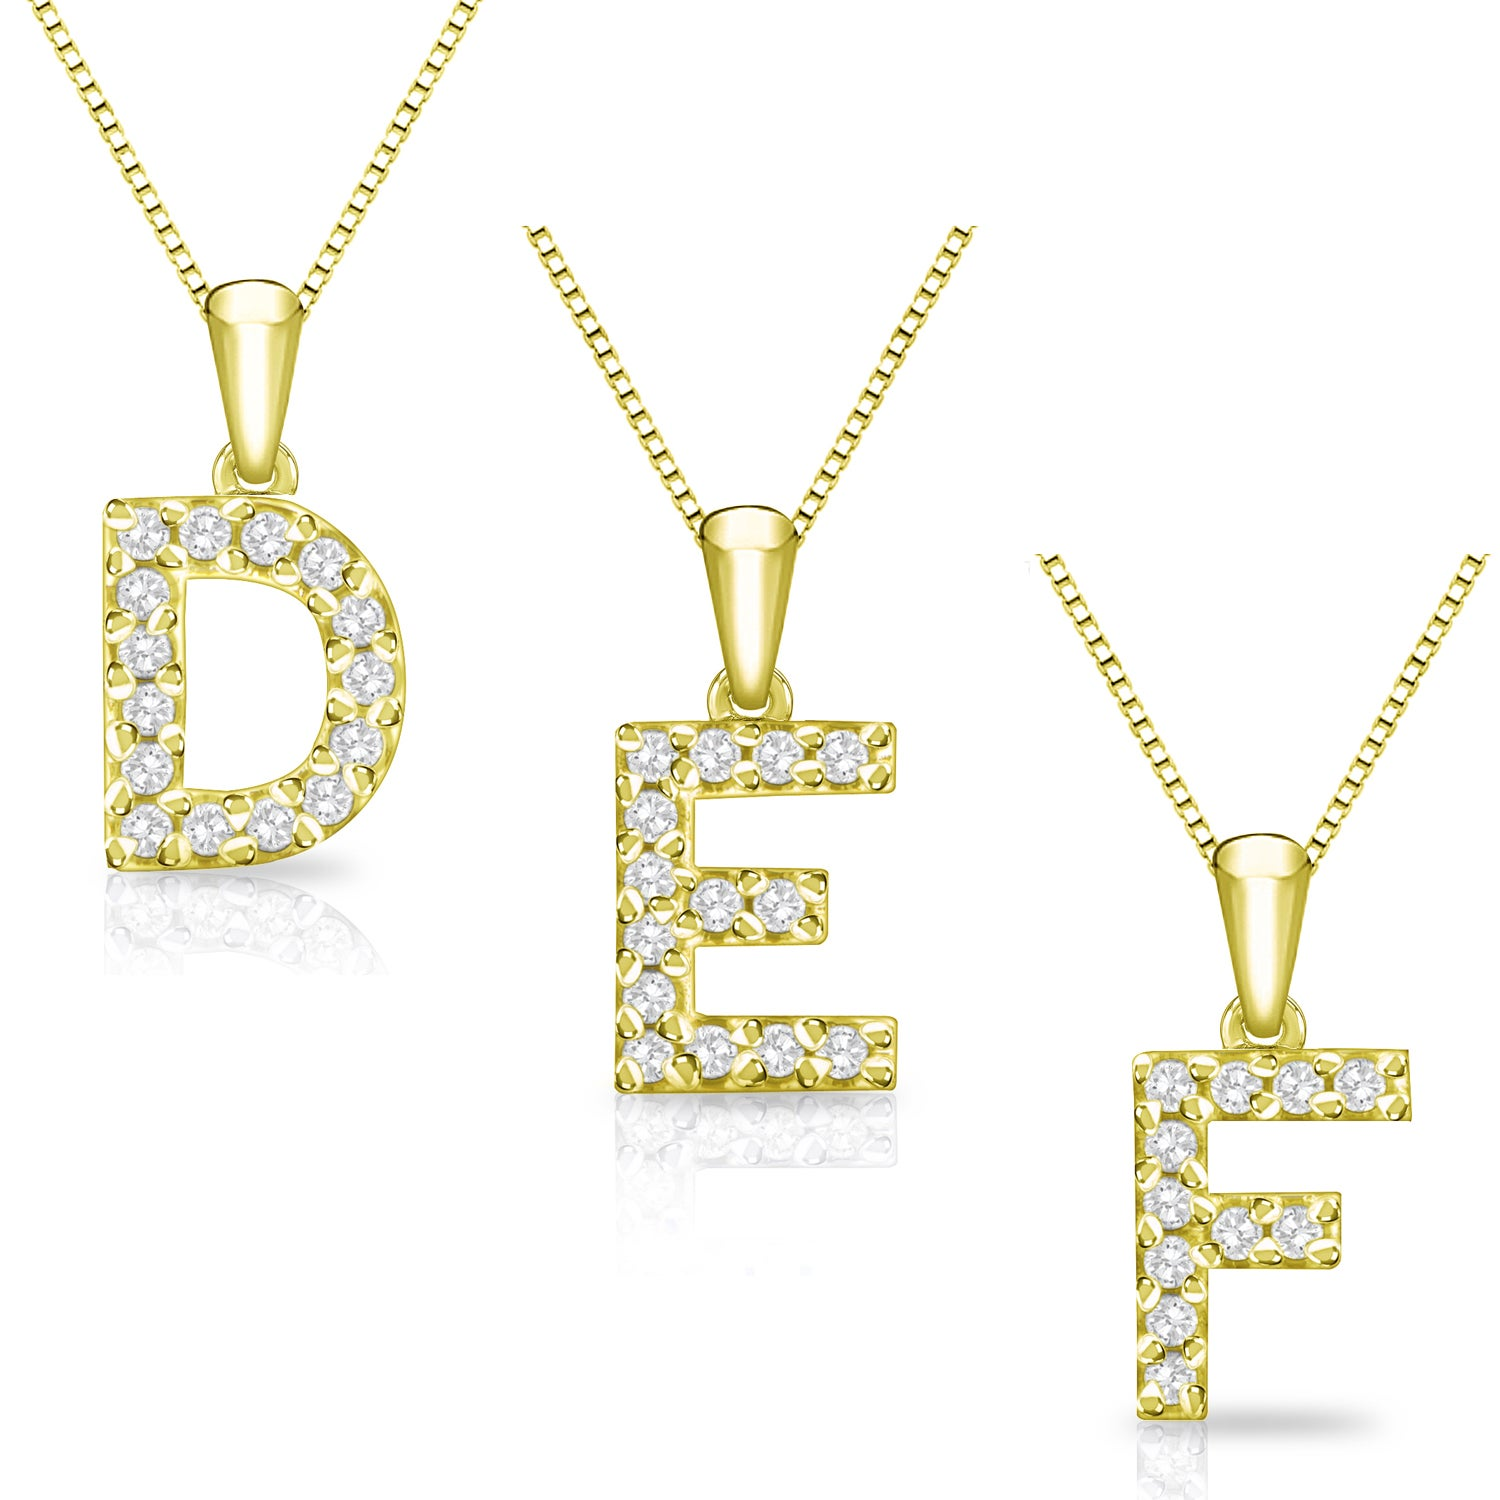 eed4d289b25 Shop 14k Yellow Gold 1 10ct TDW Diamond Accent Initial Necklace by Auriya -  On Sale - Free Shipping Today - Overstock - 10456686